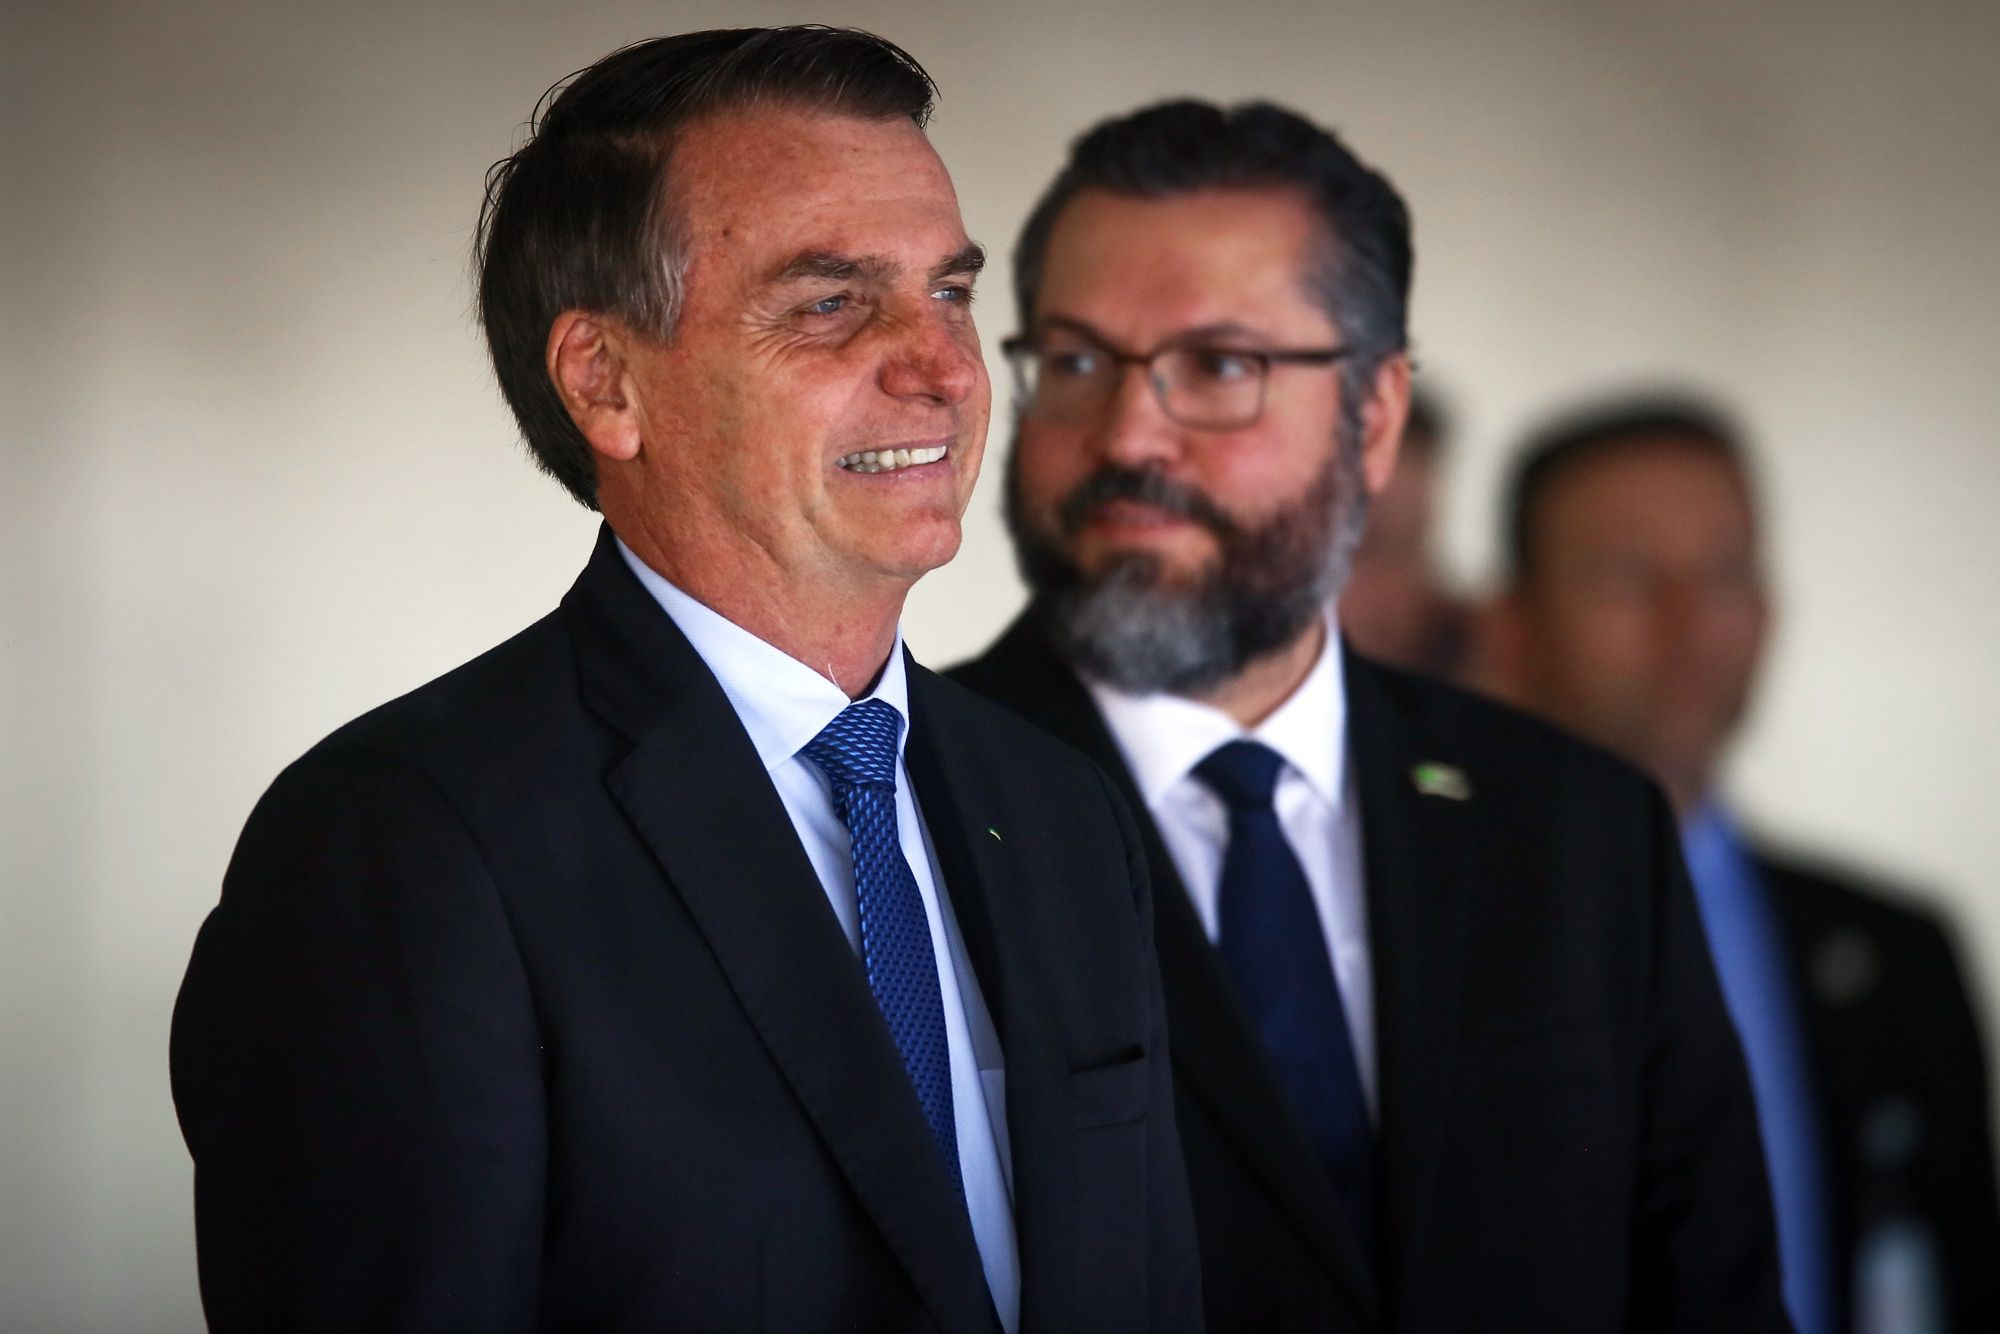 Brazil Mulls Labeling Hezbollah as Terrorists in Pivot to U.S